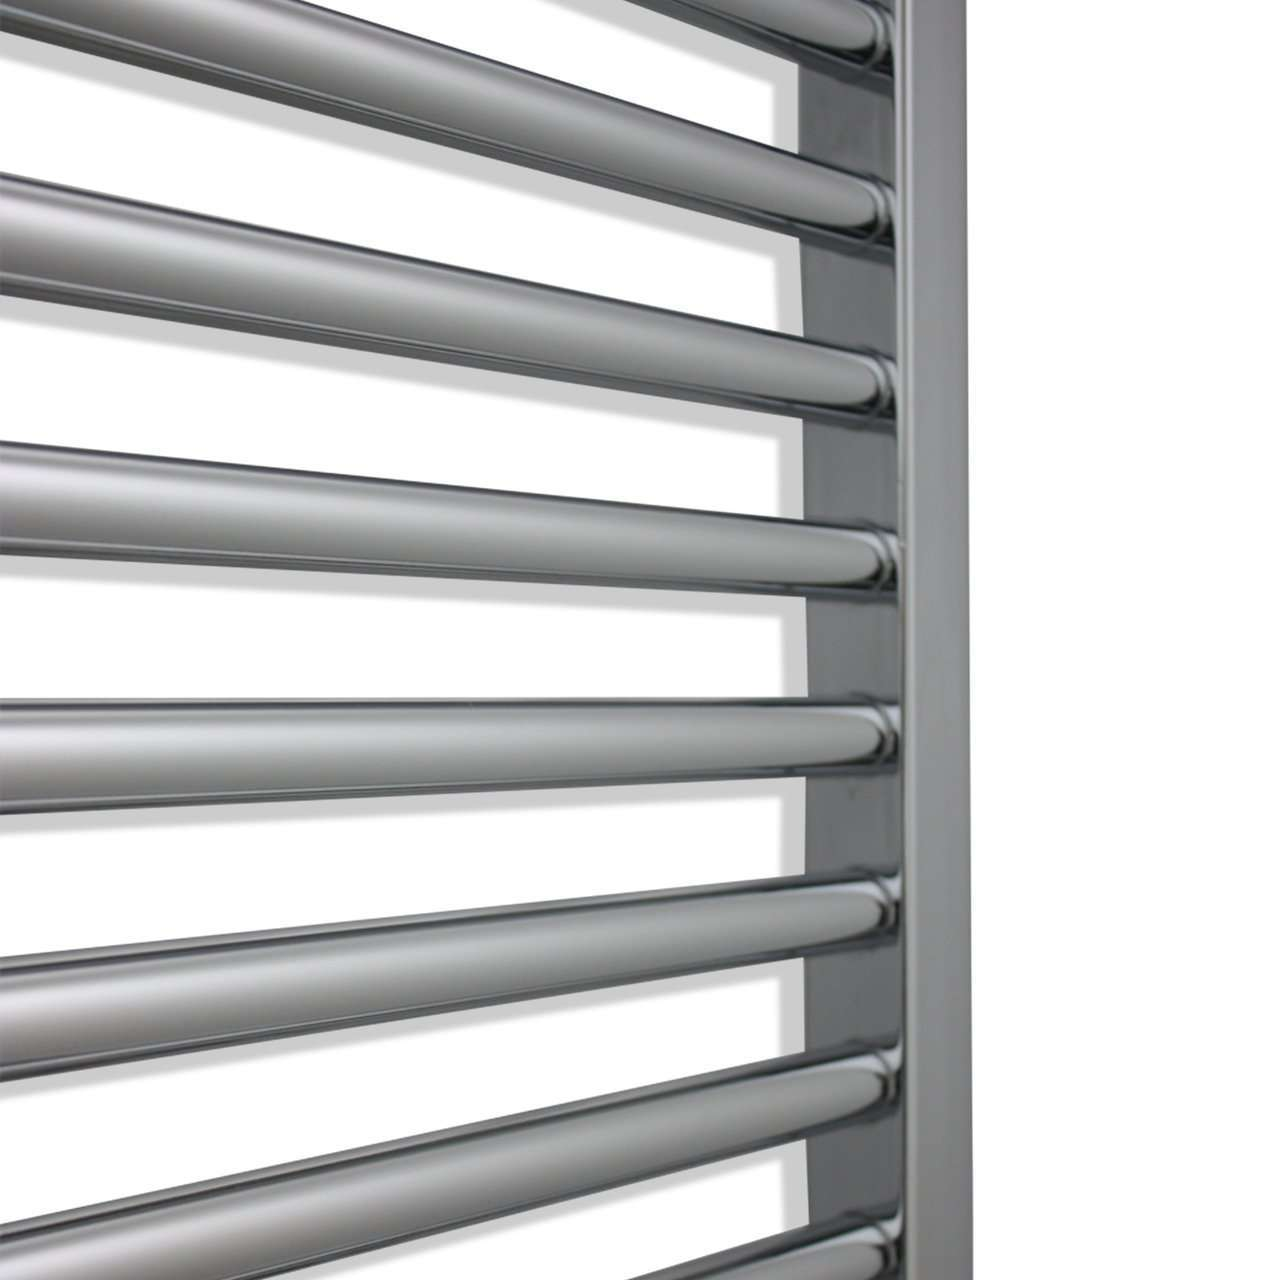 750mm Wide 1100mm High Curved Chrome Heated Towel Rail Radiator HTR